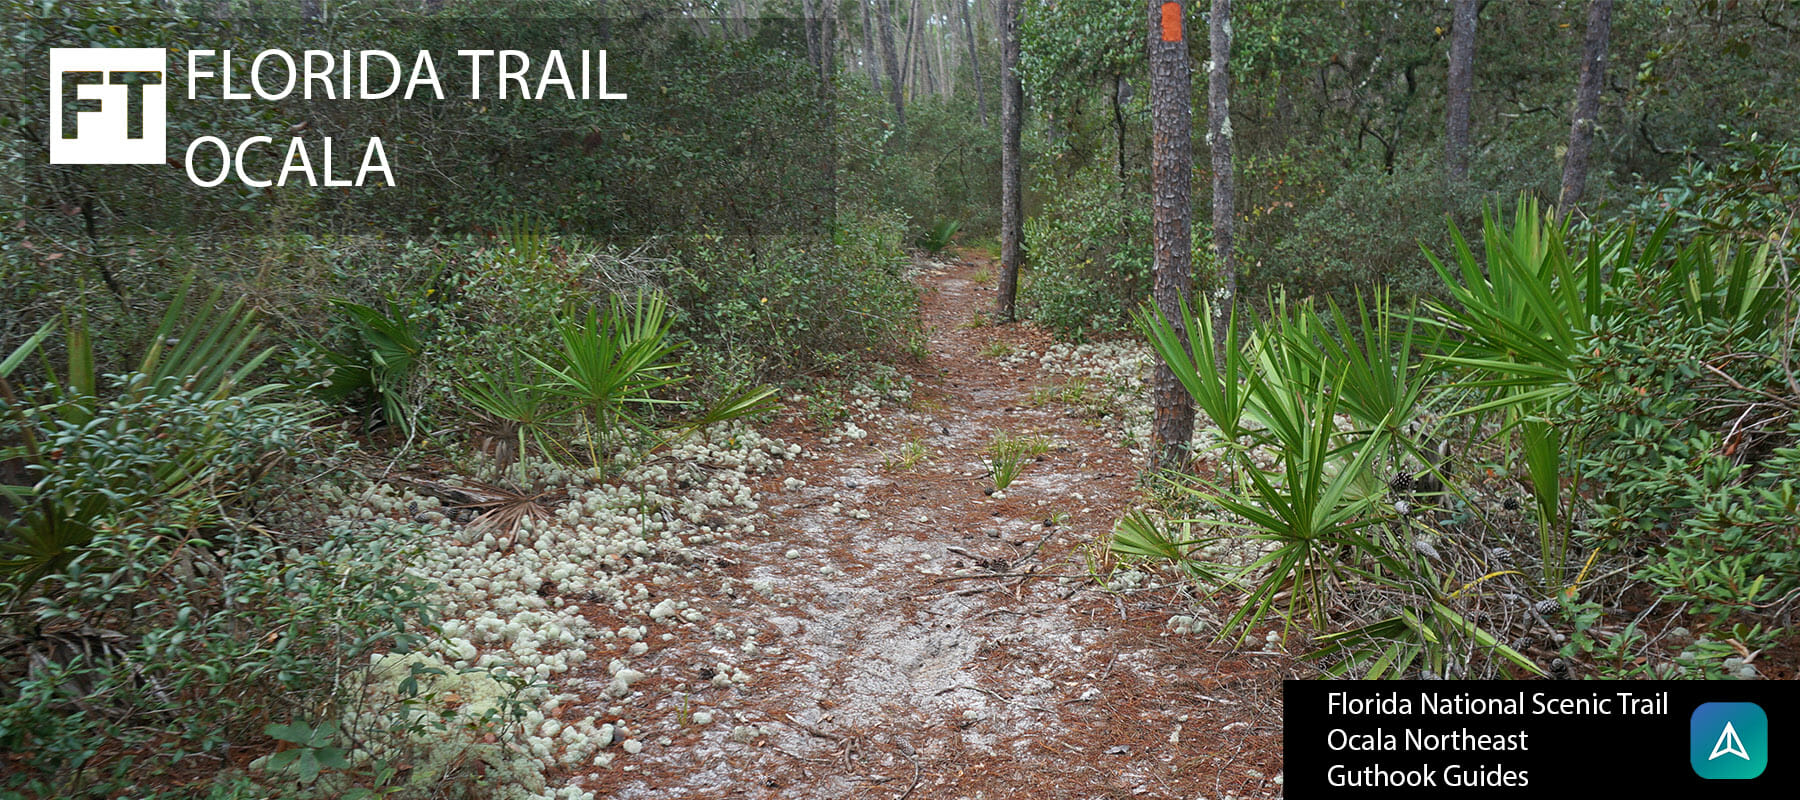 Florida Trail, Ocala